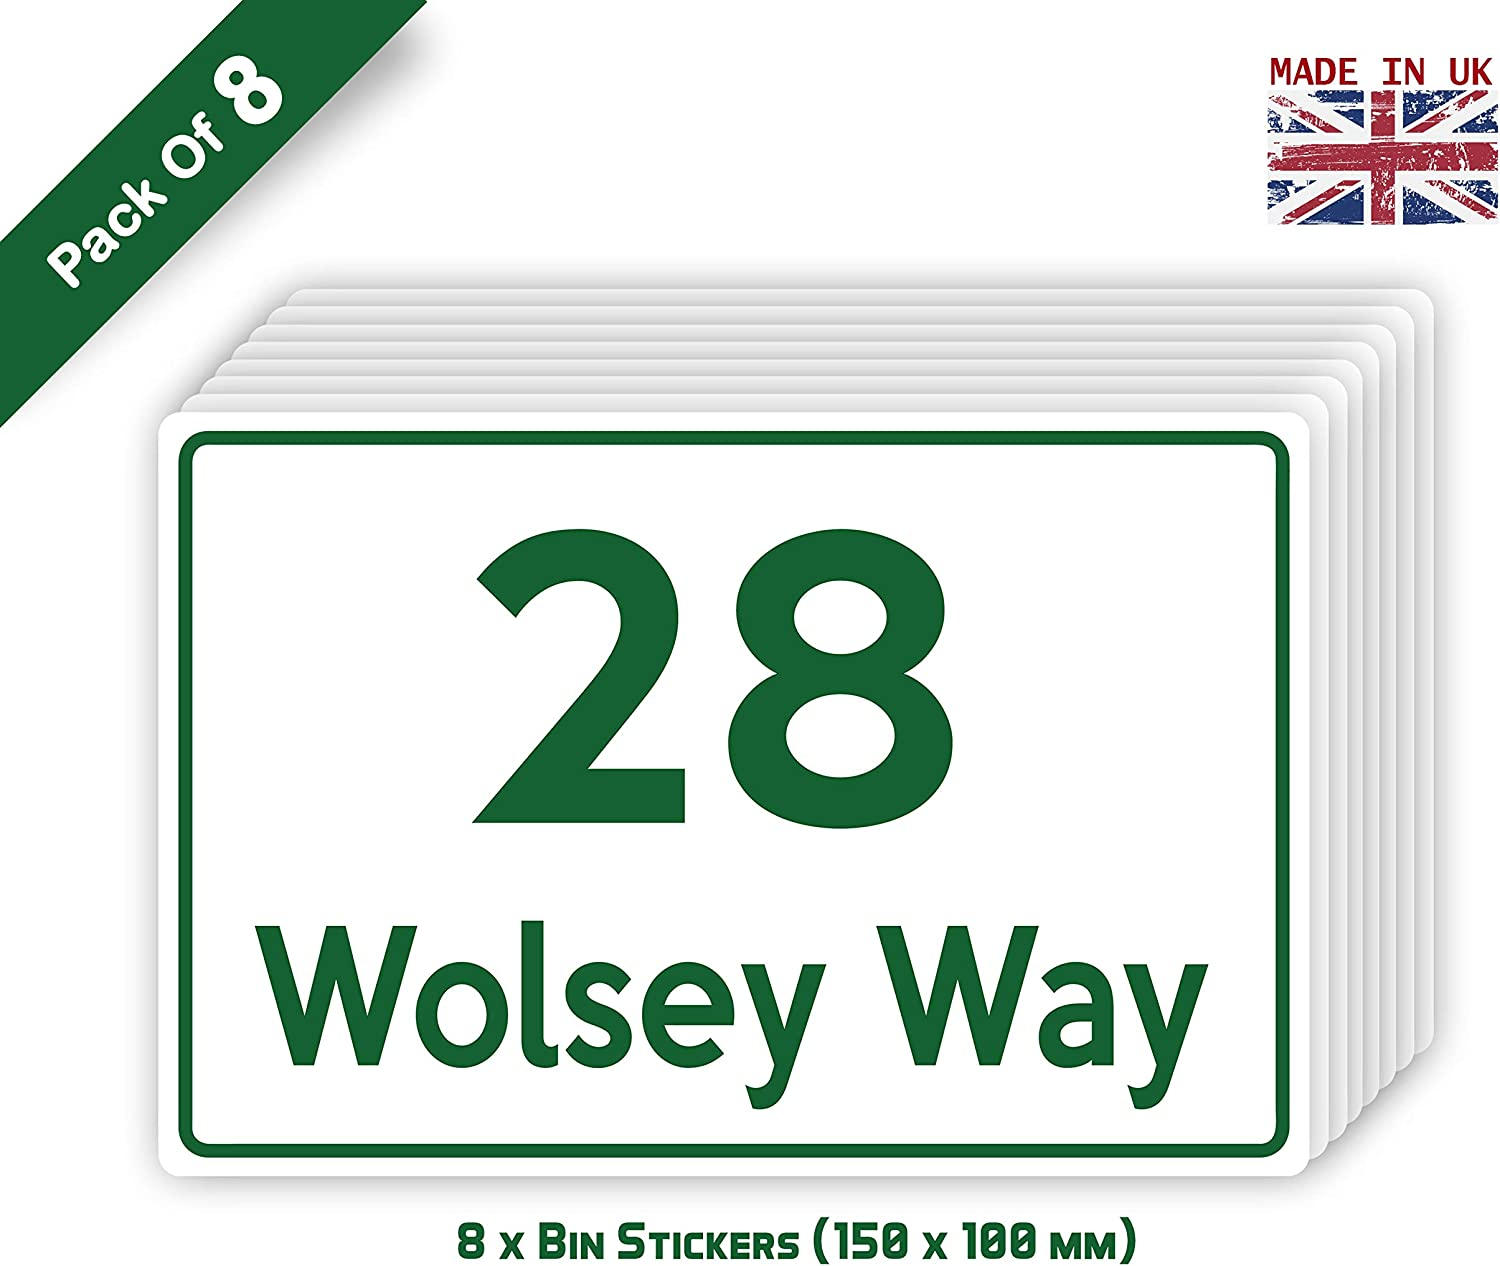 Pack of 12 A6 Waterproof Labels Classic Style Attractive Colour Stickers PBN06 Stickers Limited Brown 150 x 100 mm Personalised Custom Wheelie Bin Stickers with Your House Number /& Road Name